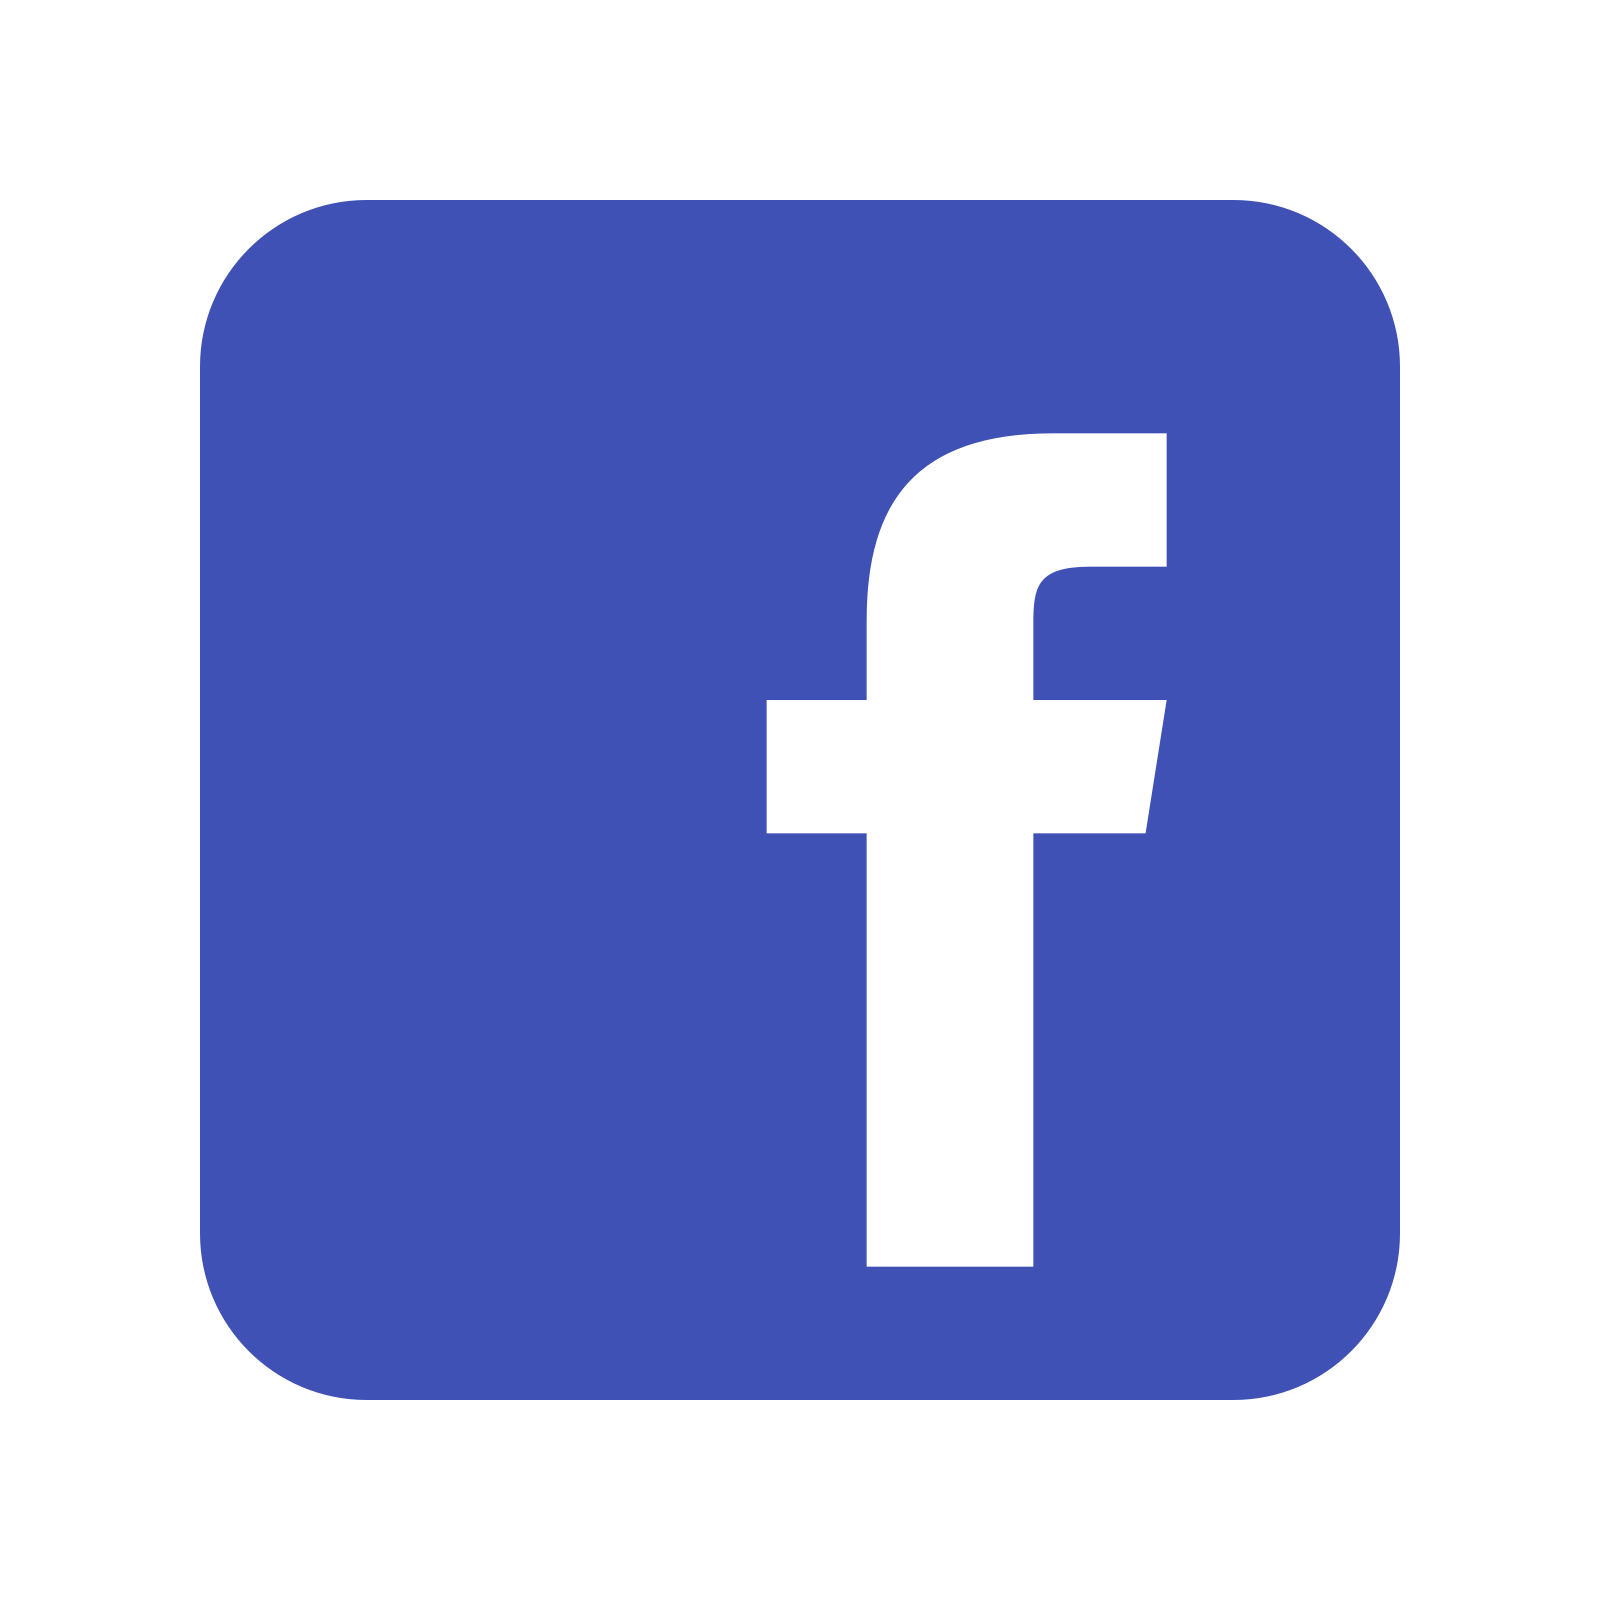 St Mary's Facebook page